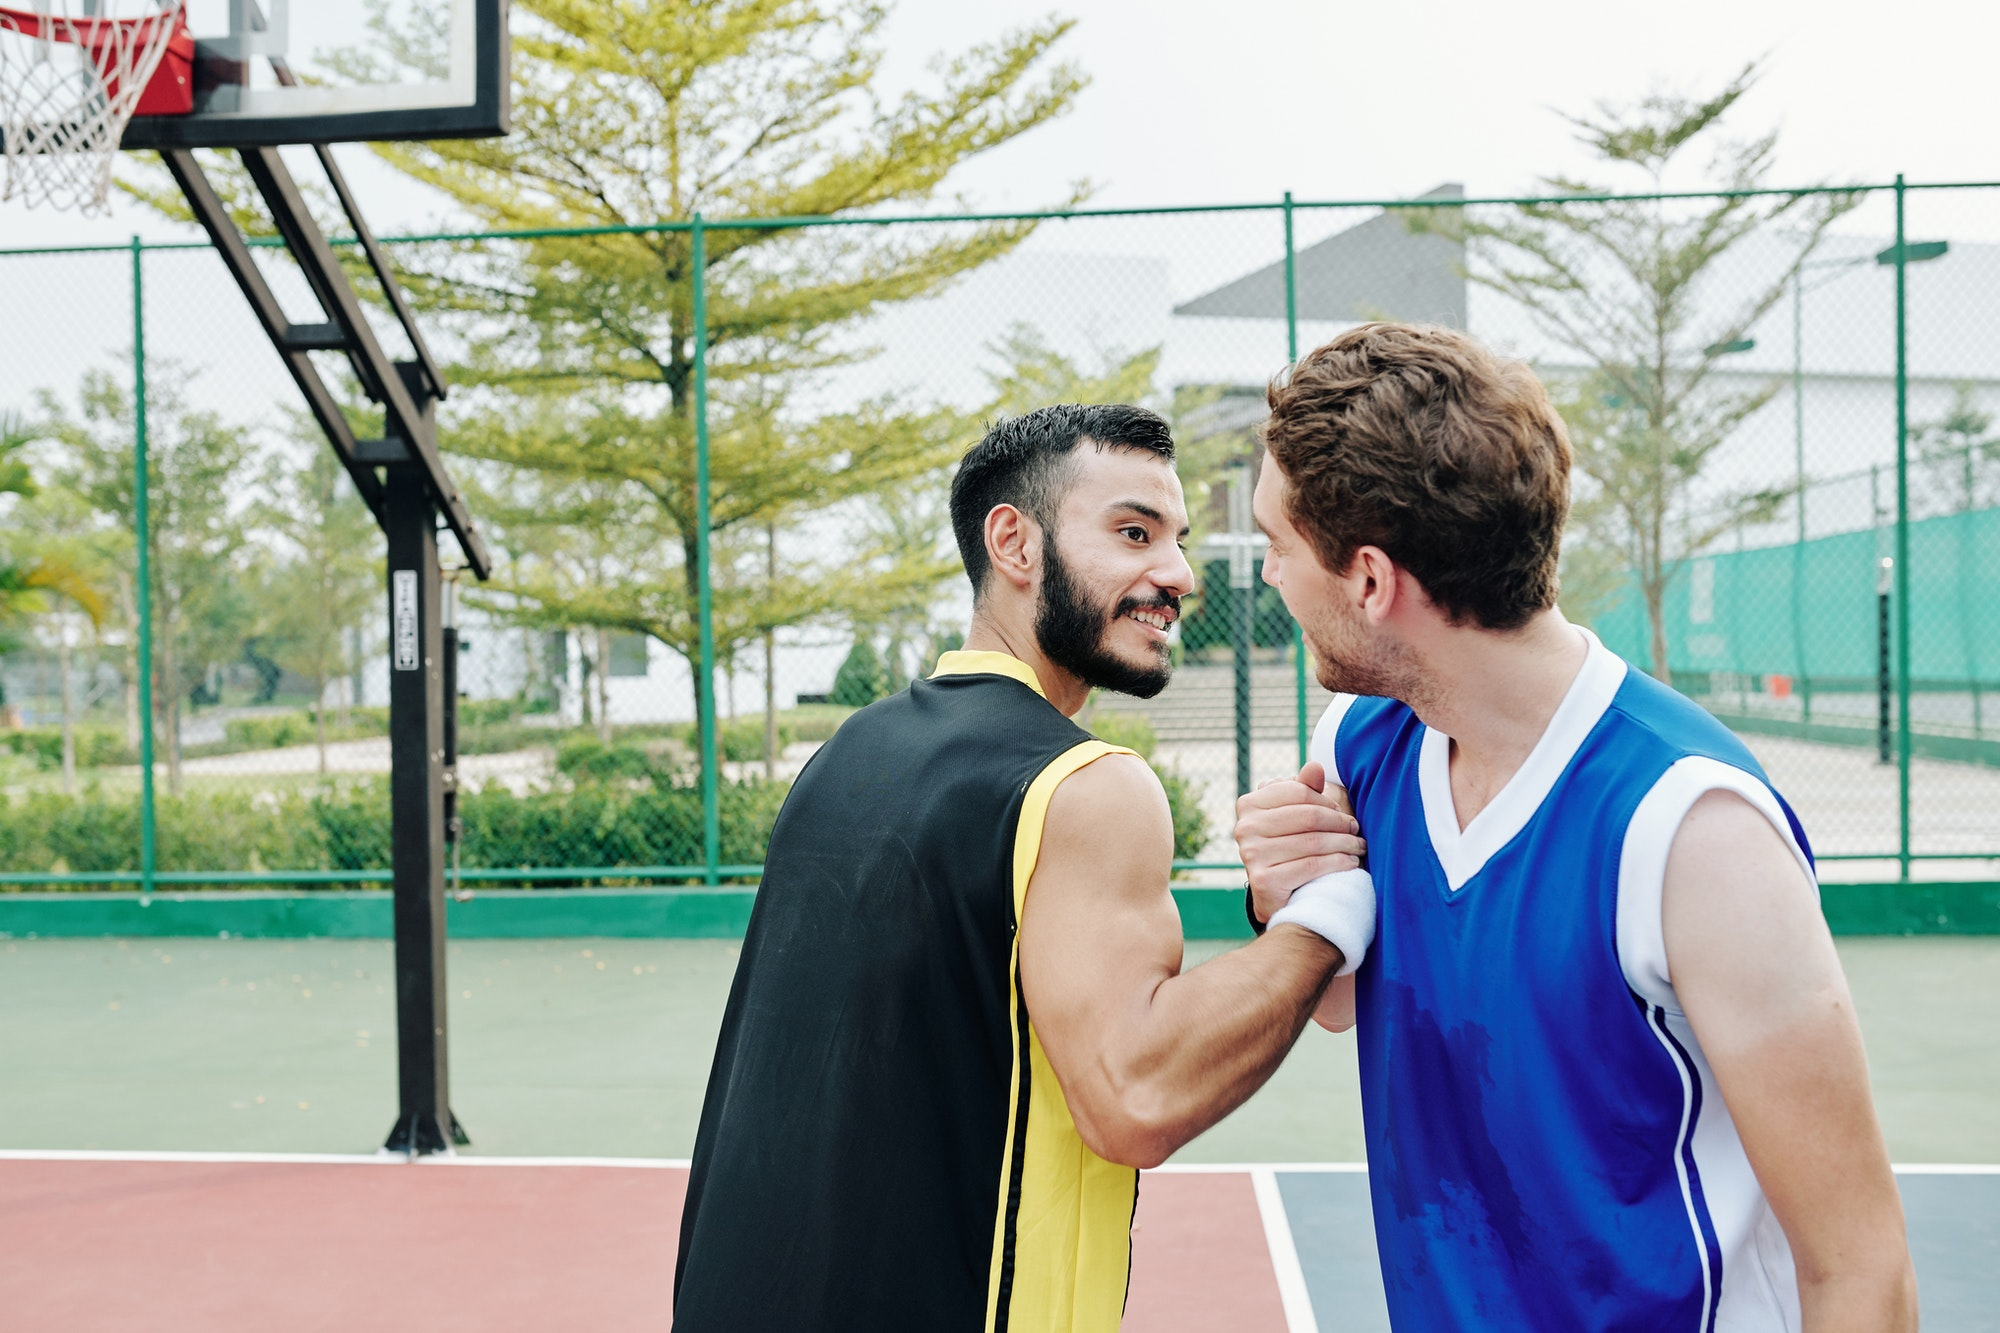 Basketball players shaking hands